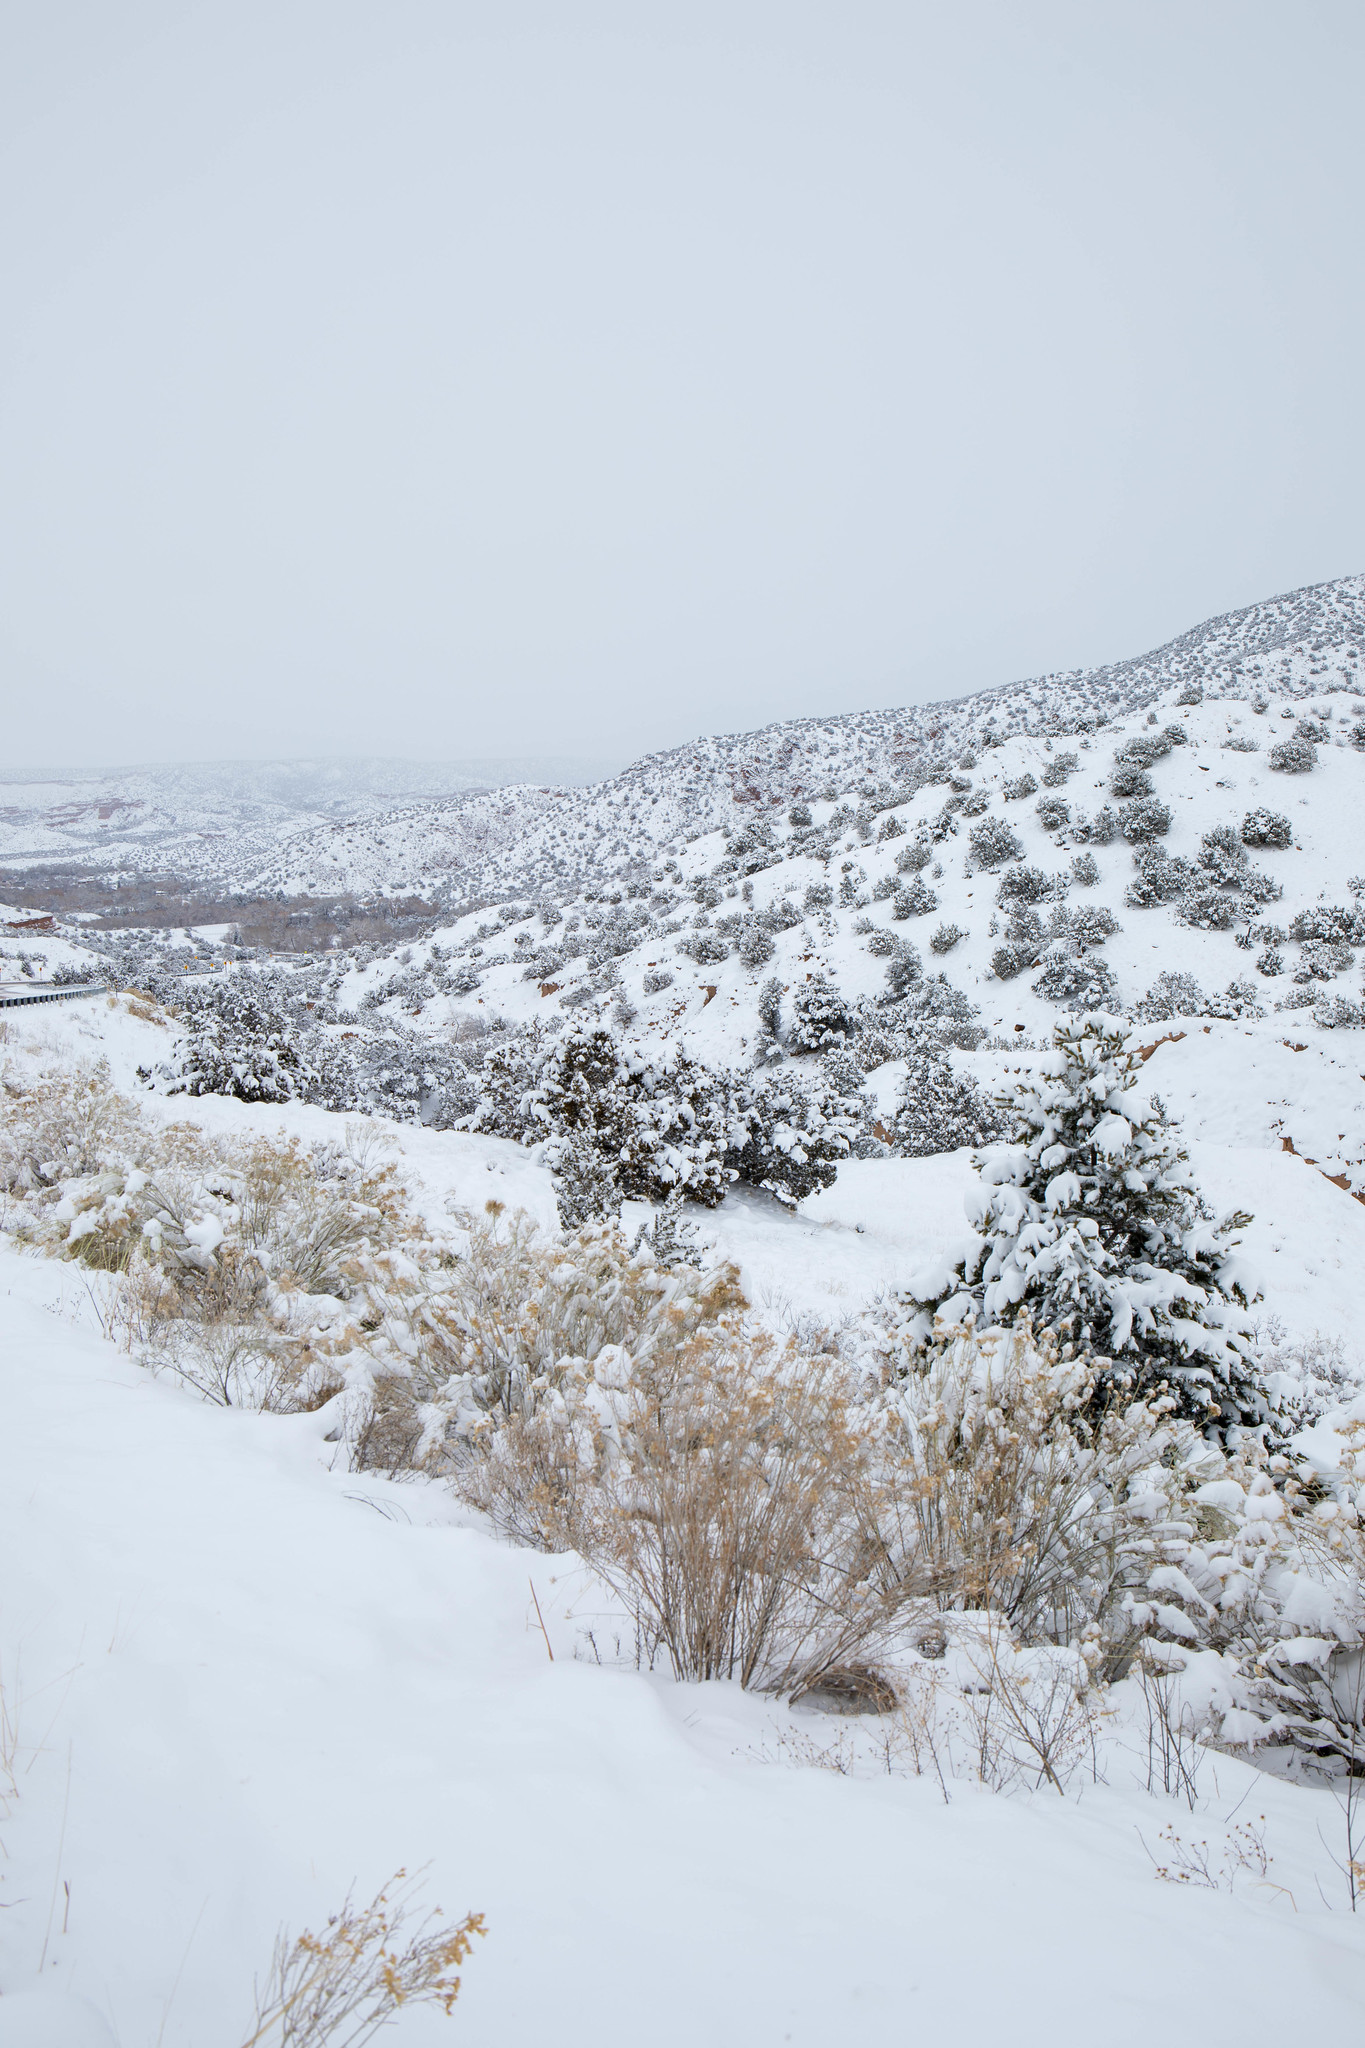 12.28. High Road To Taos, New Mexico